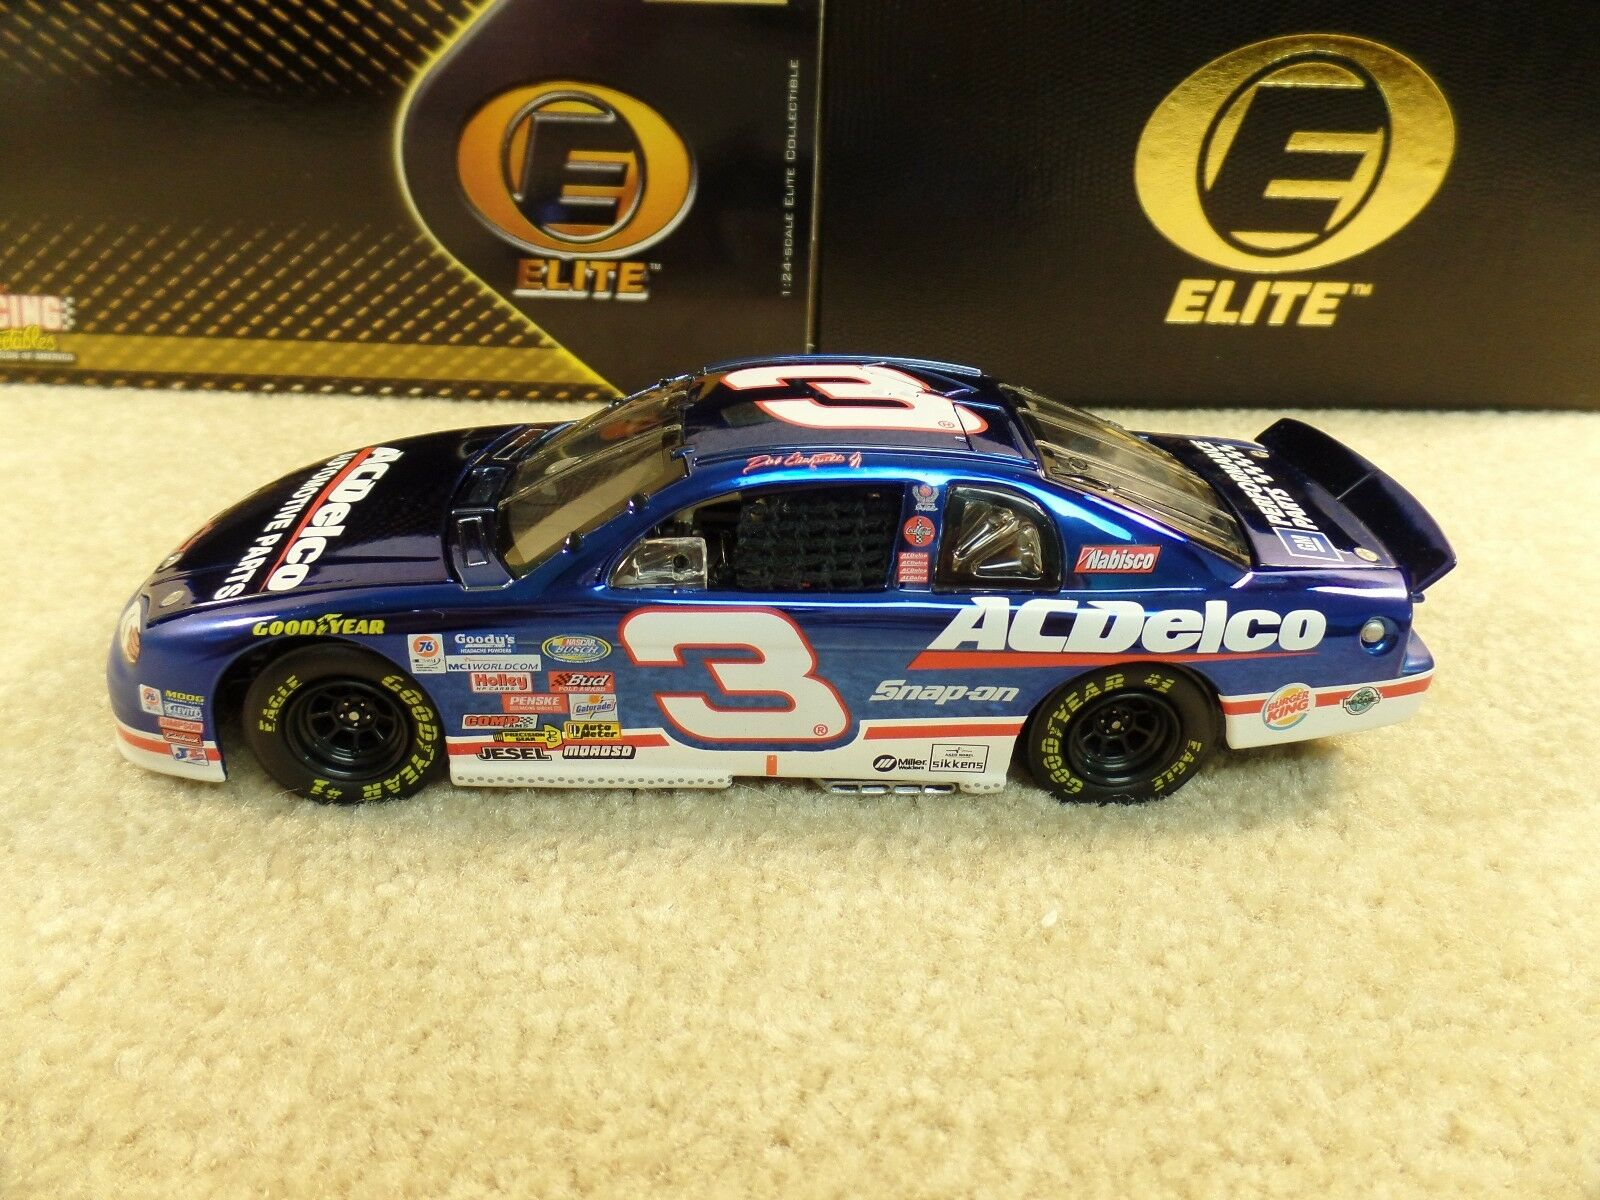 New 1999 Action Elite 1 24 NASCAR Dale Earnhardt Jr AC Delco Last Lap Century